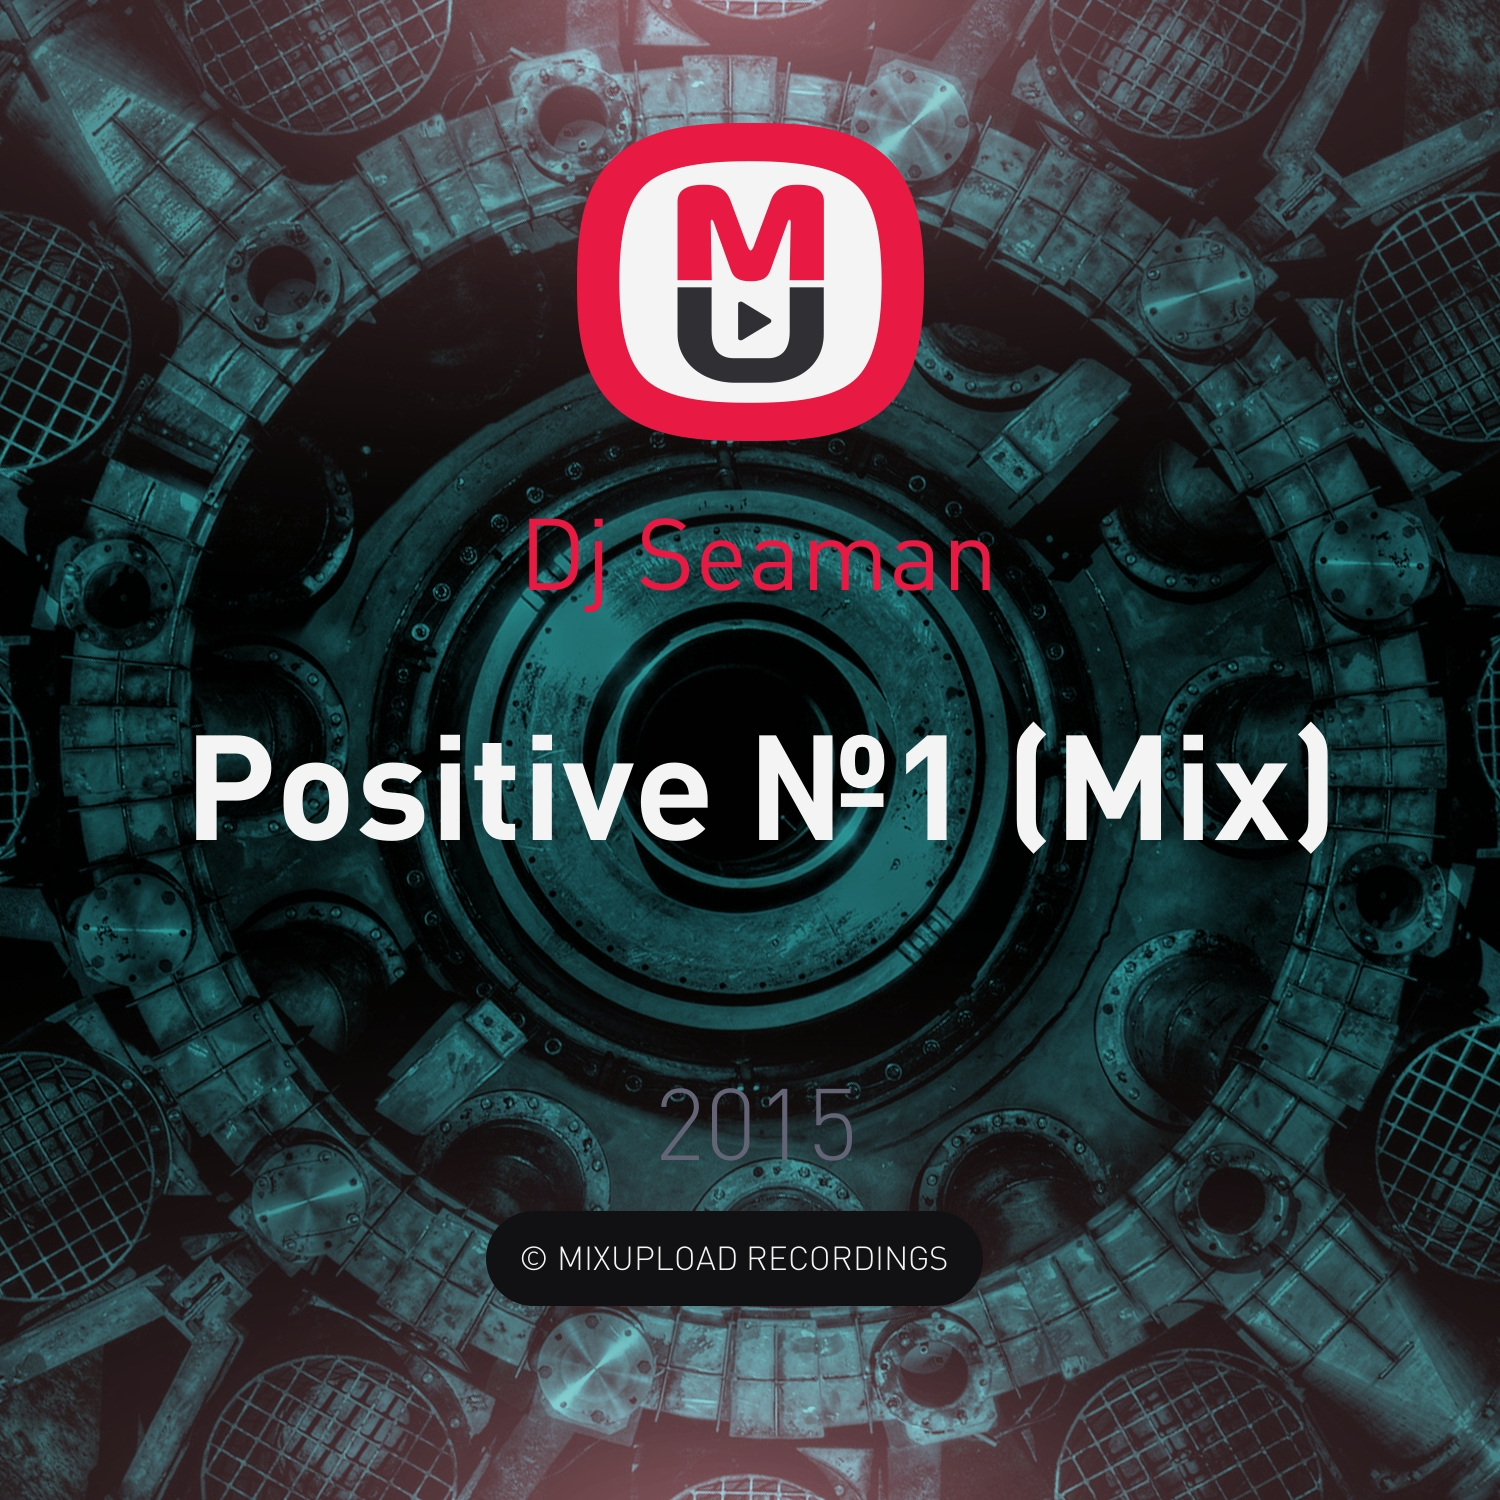 Dj Seaman - Positive №1 (Mix)